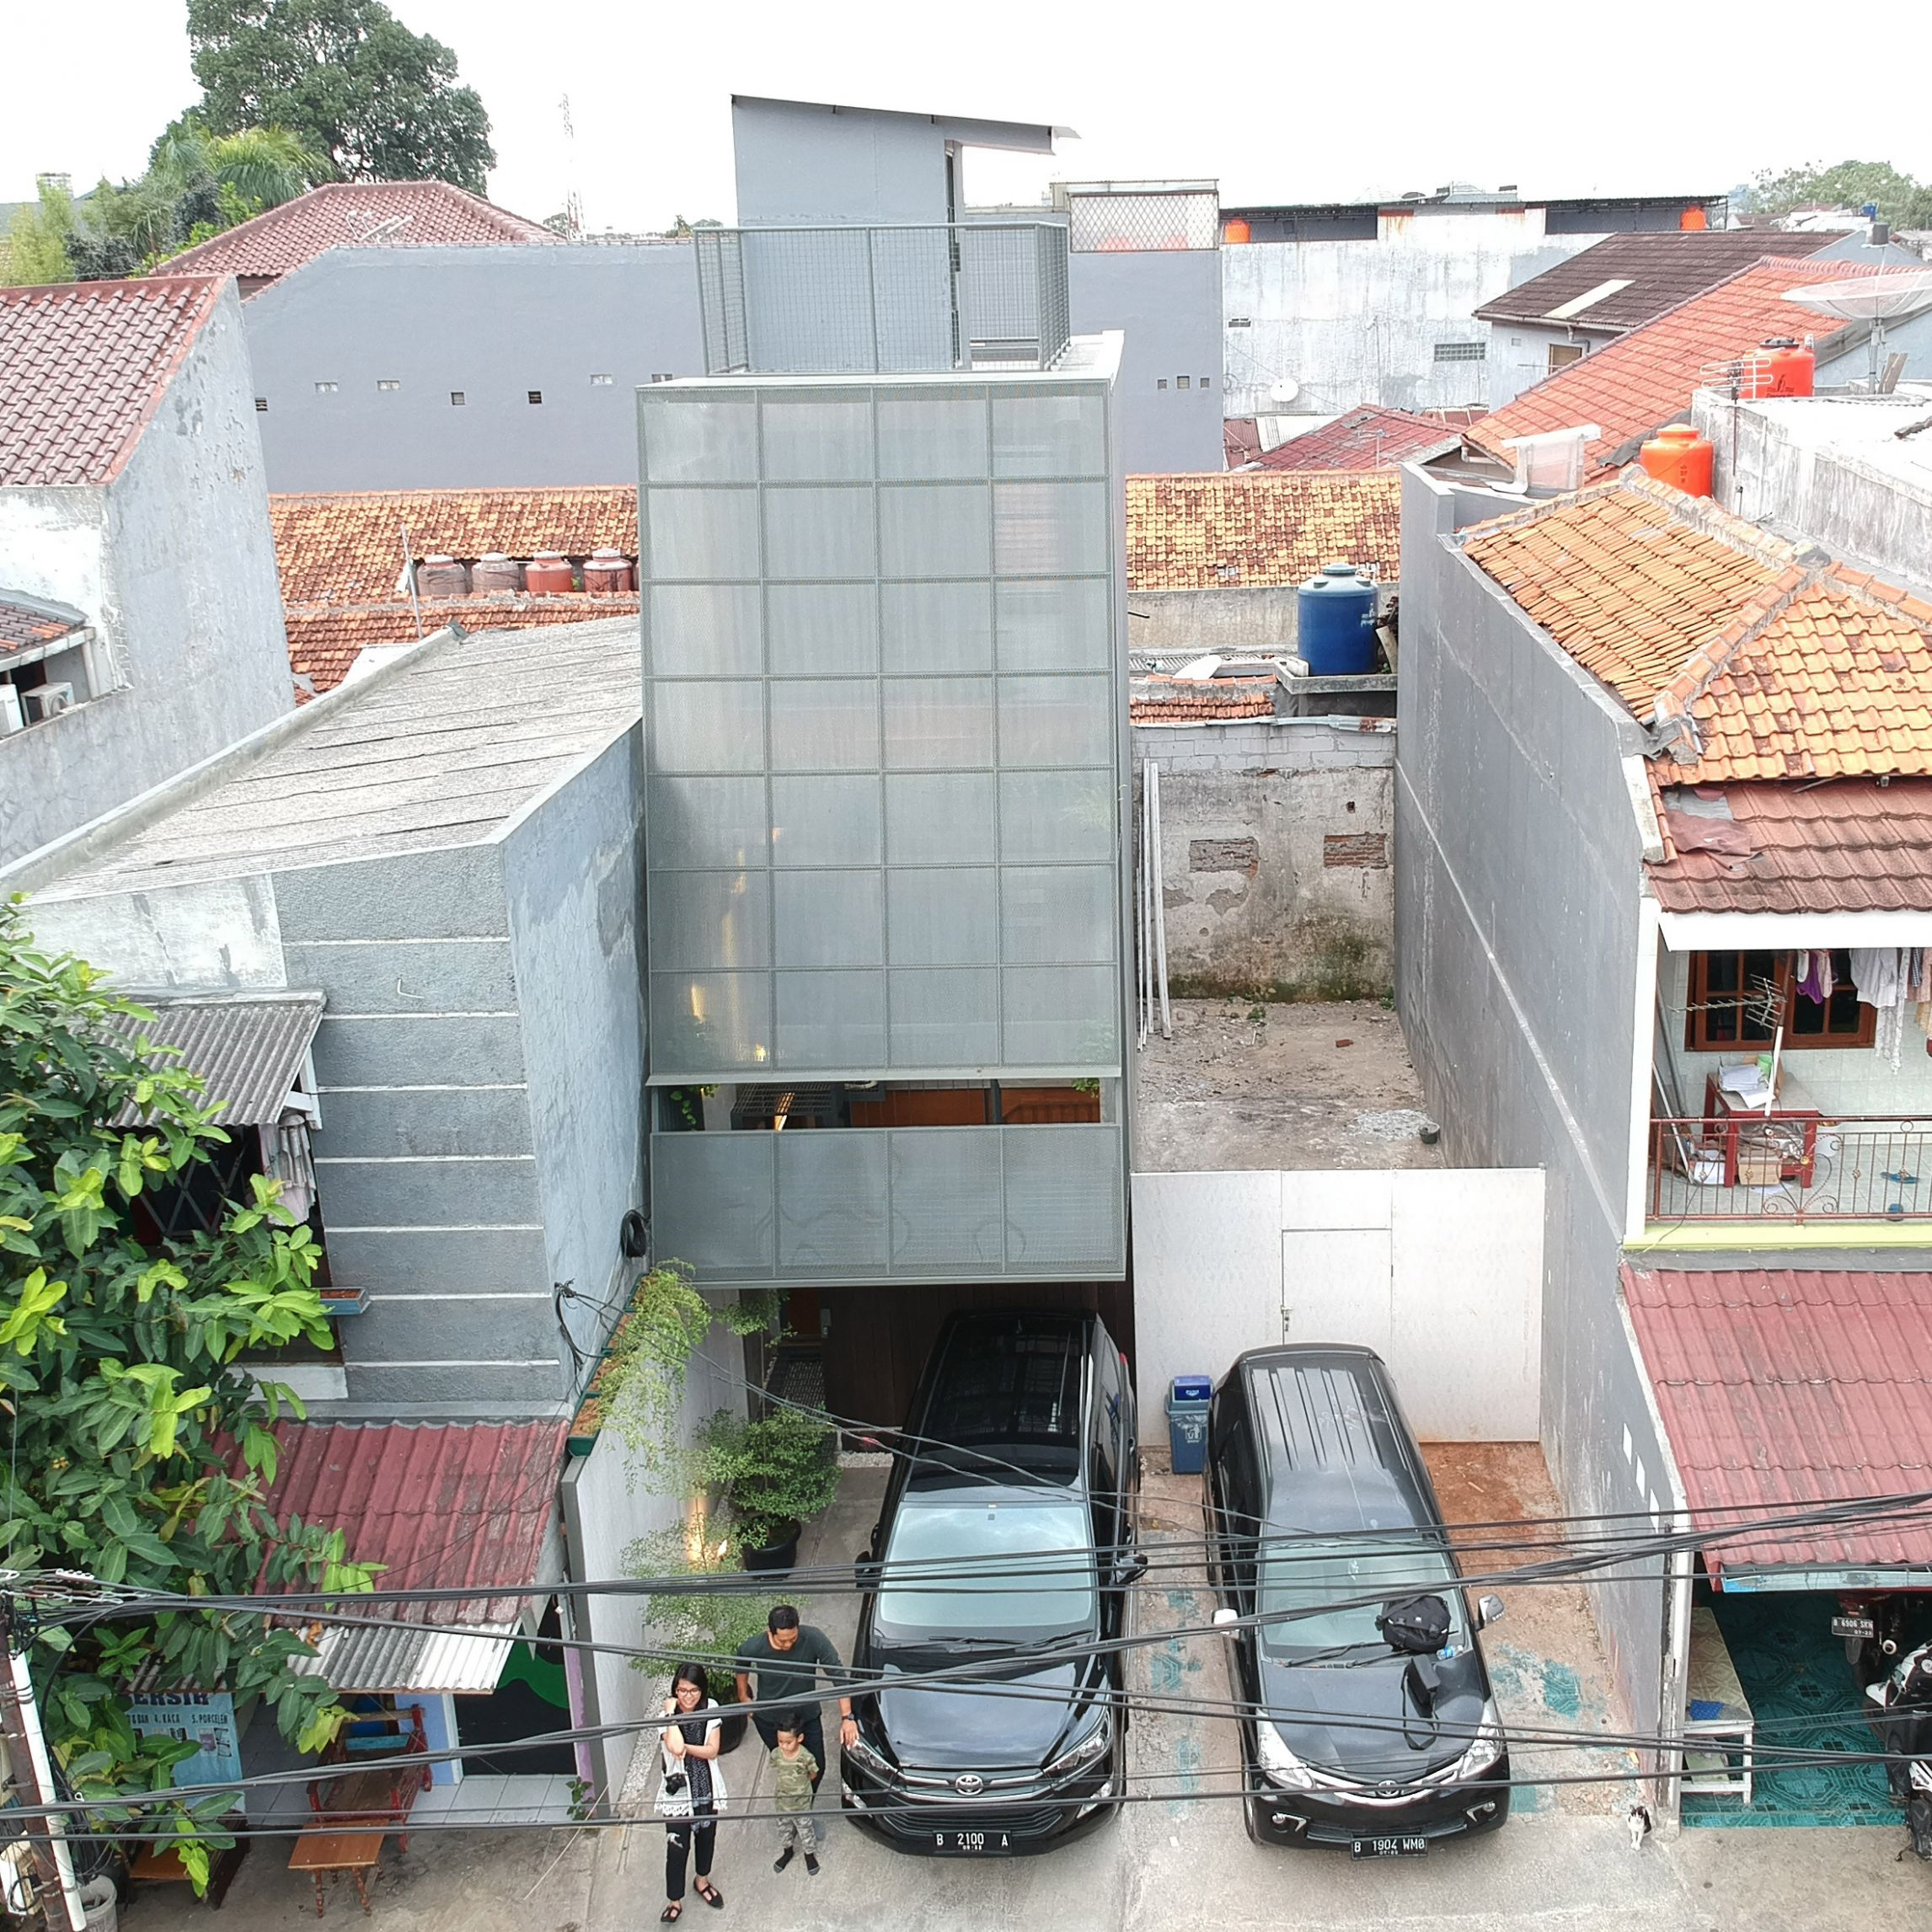 11,11 Millimetre House is a skinny house in Indonesia on a 11.11 ...